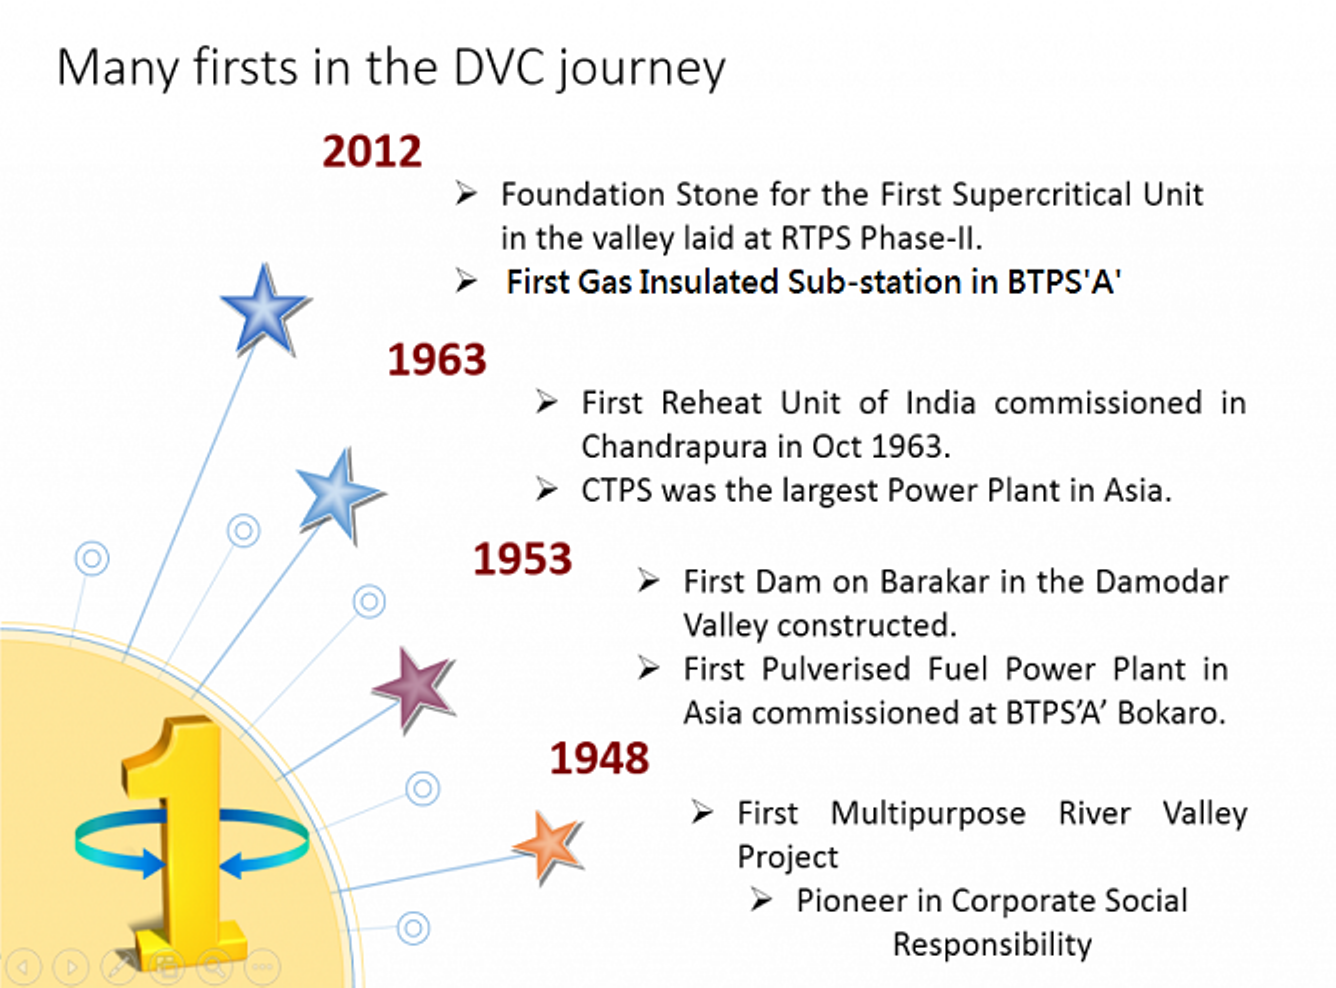 Many-firsts-in-DVC-1024x740